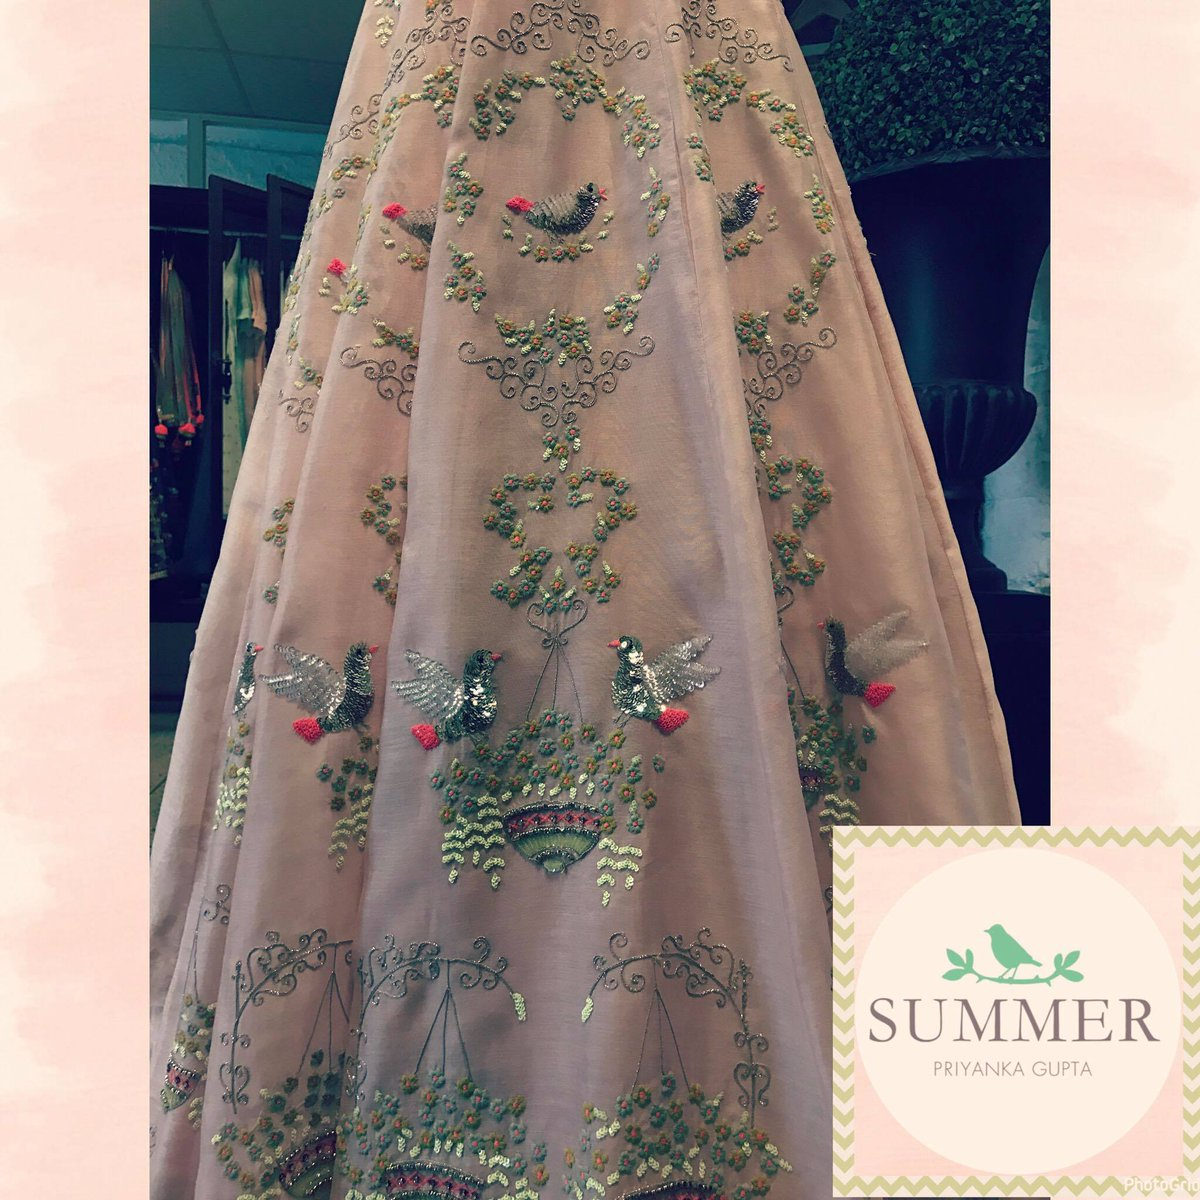 Summer By Priyanka Gupta. Contact : 098990 70899.